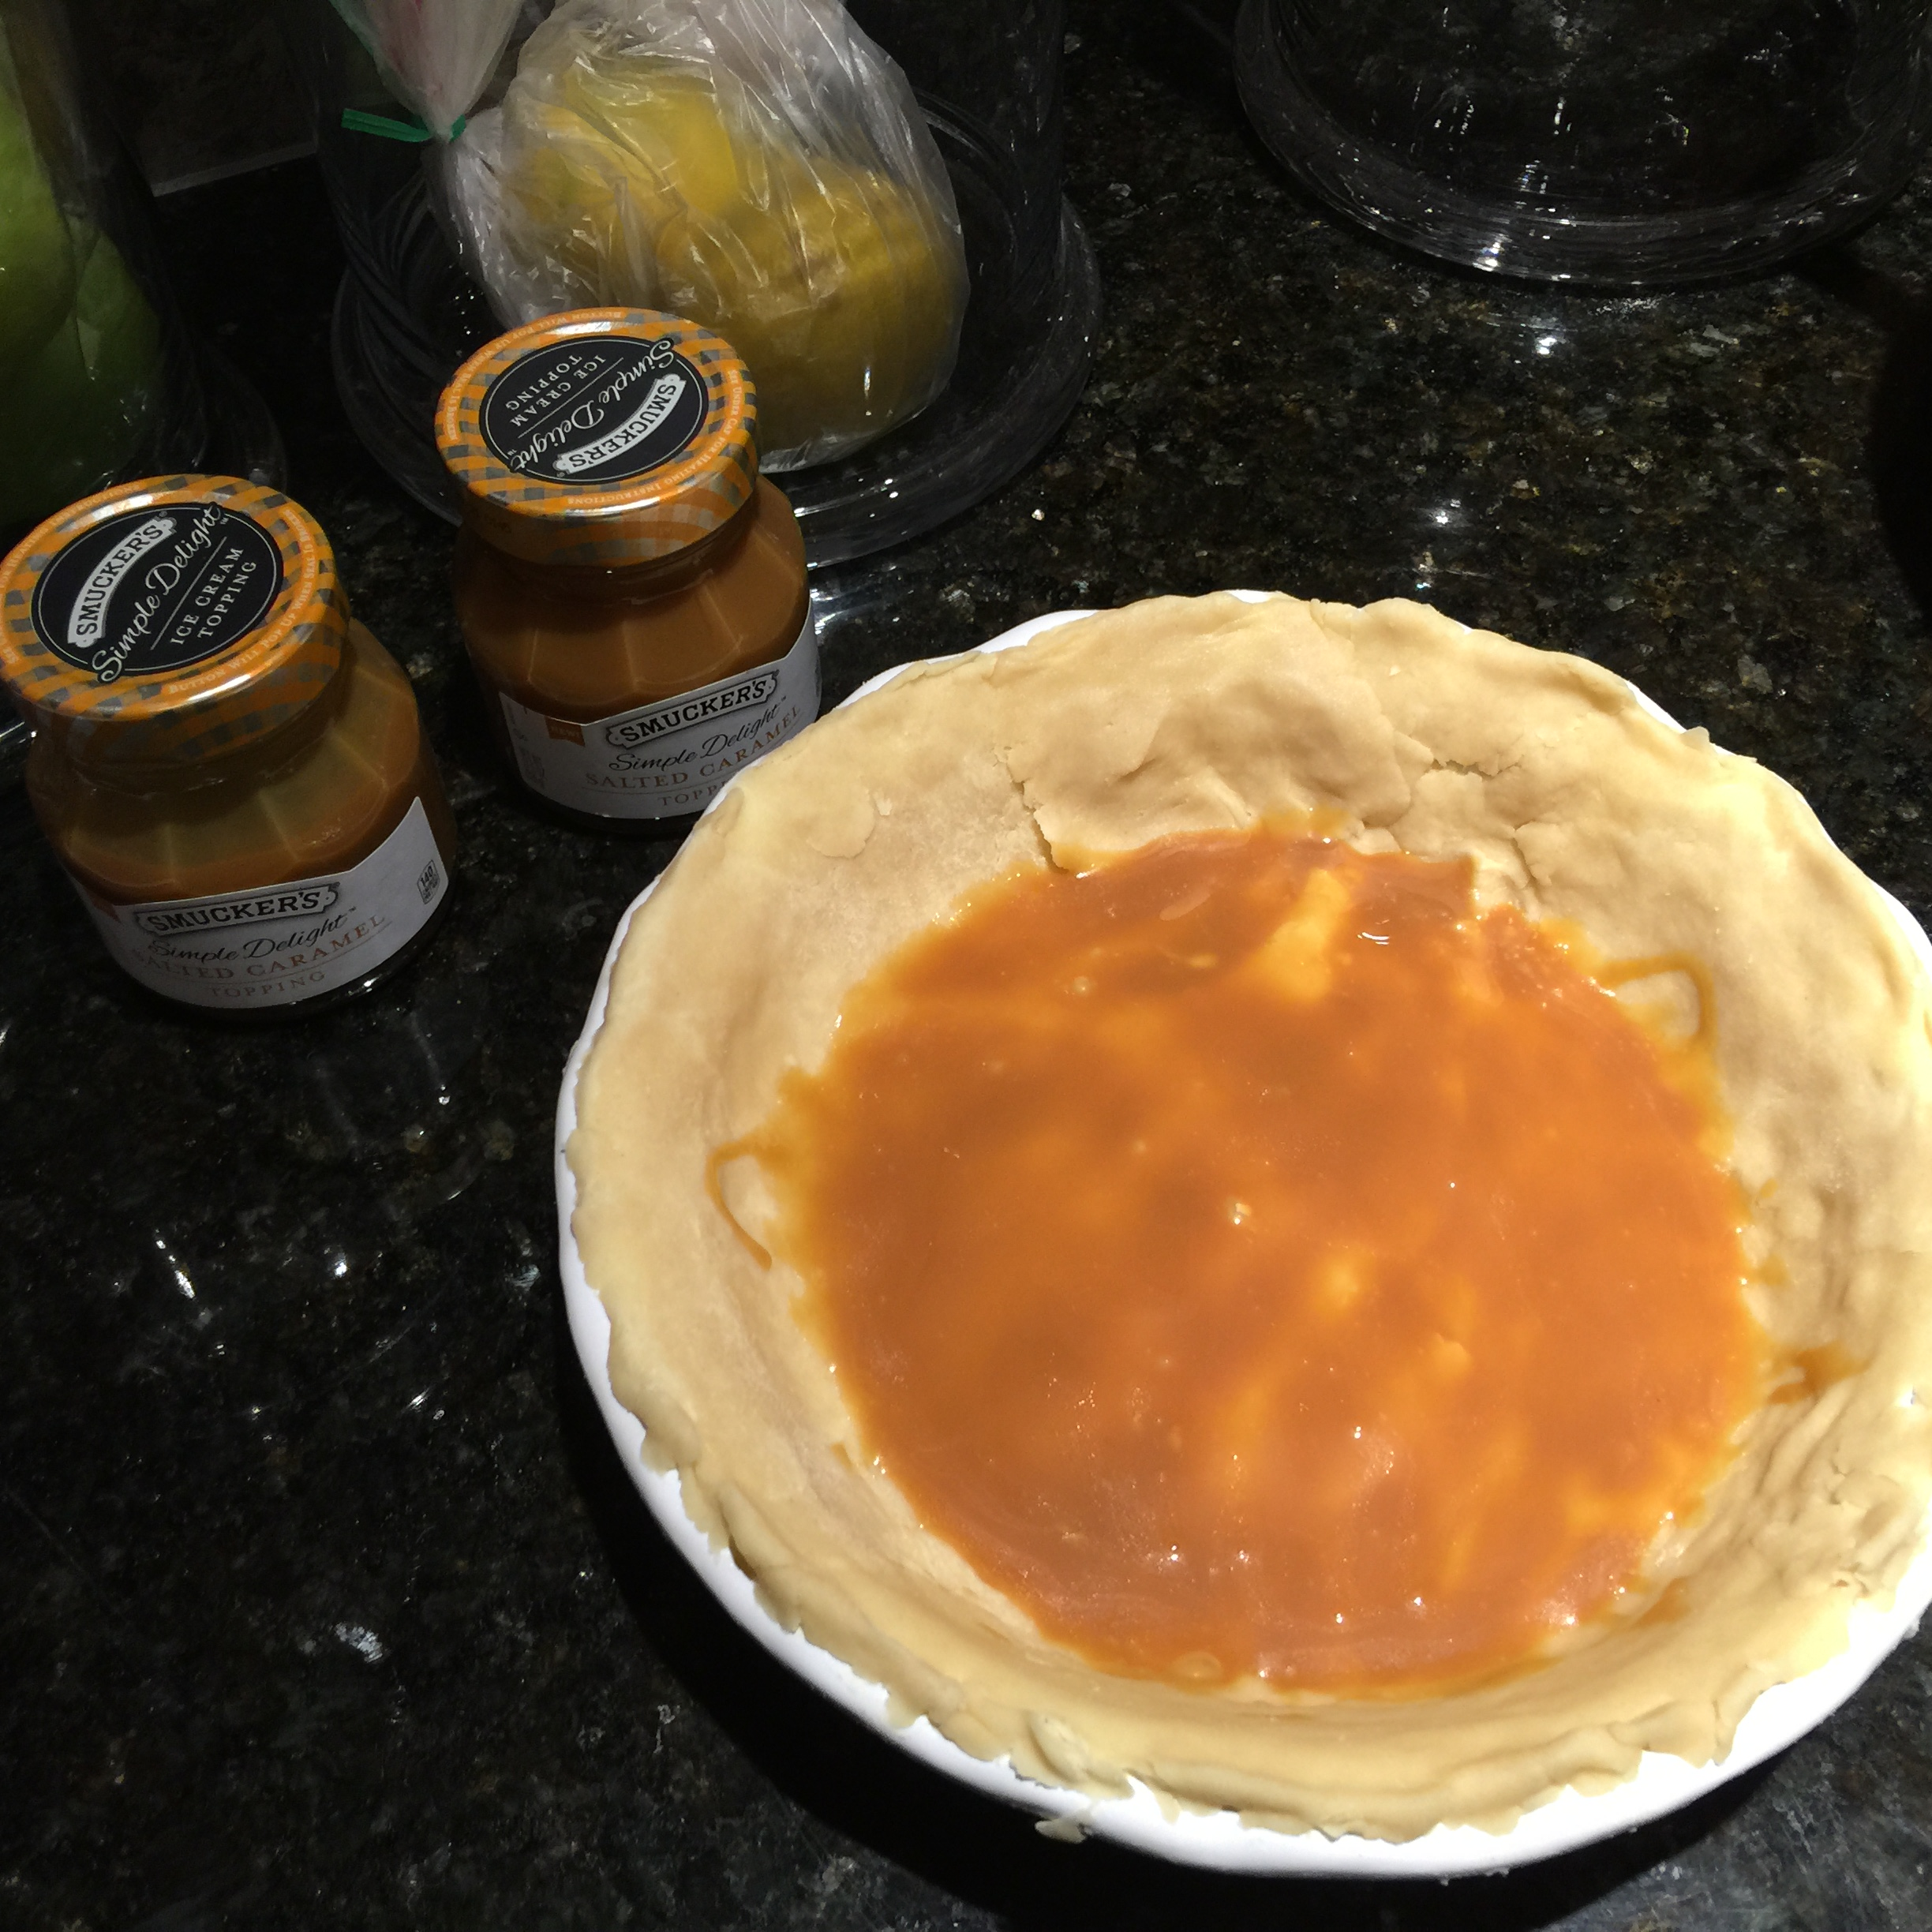 Caramel in Pie Crust